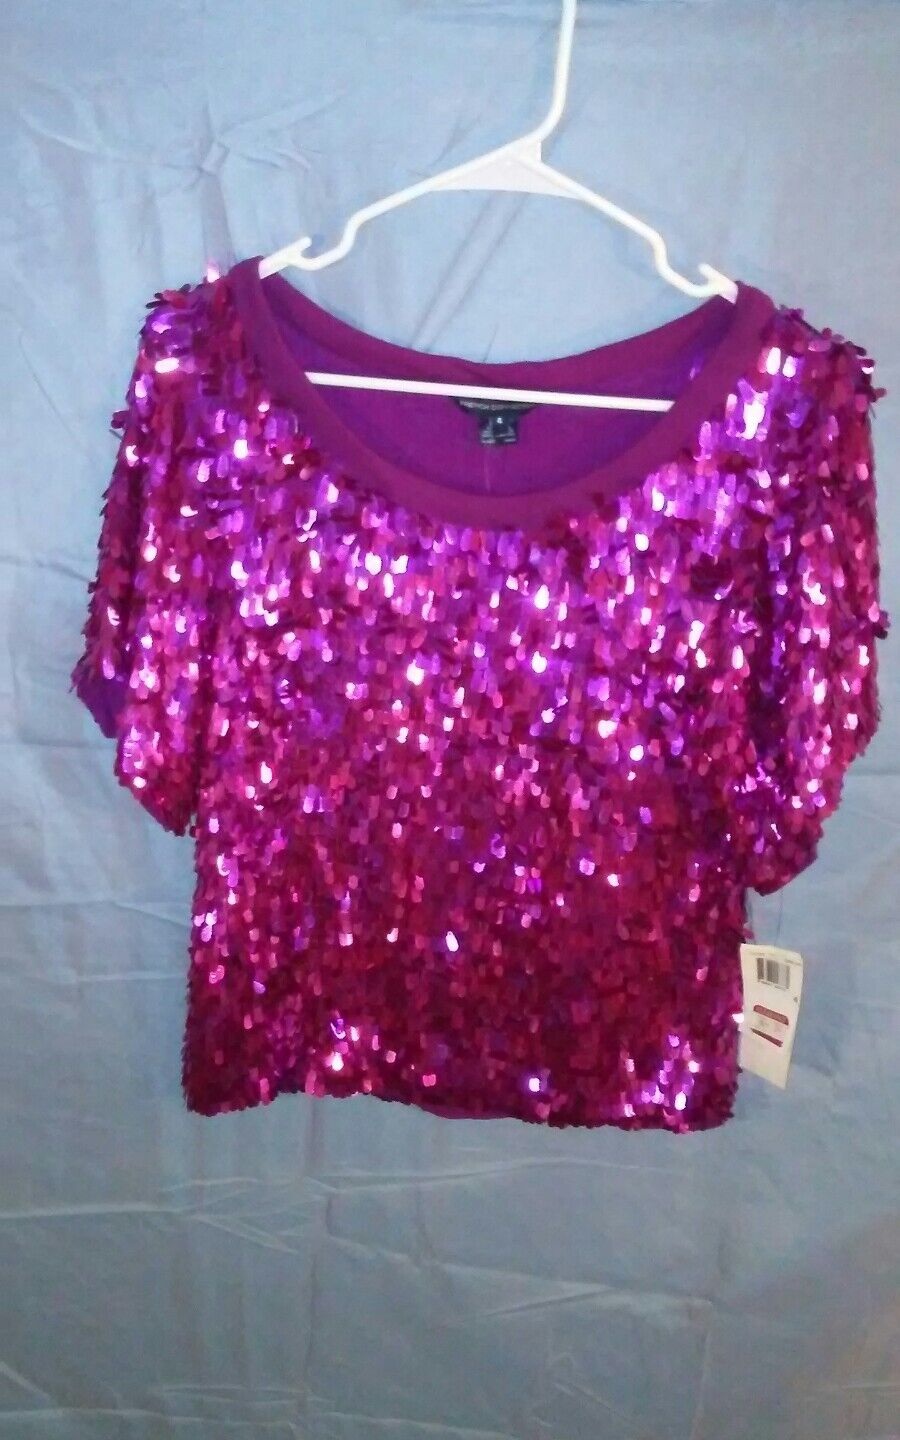 French Connection Dream Sequin T-Shirt Top Blouse Fuchsia Rosa sz 4 NWT